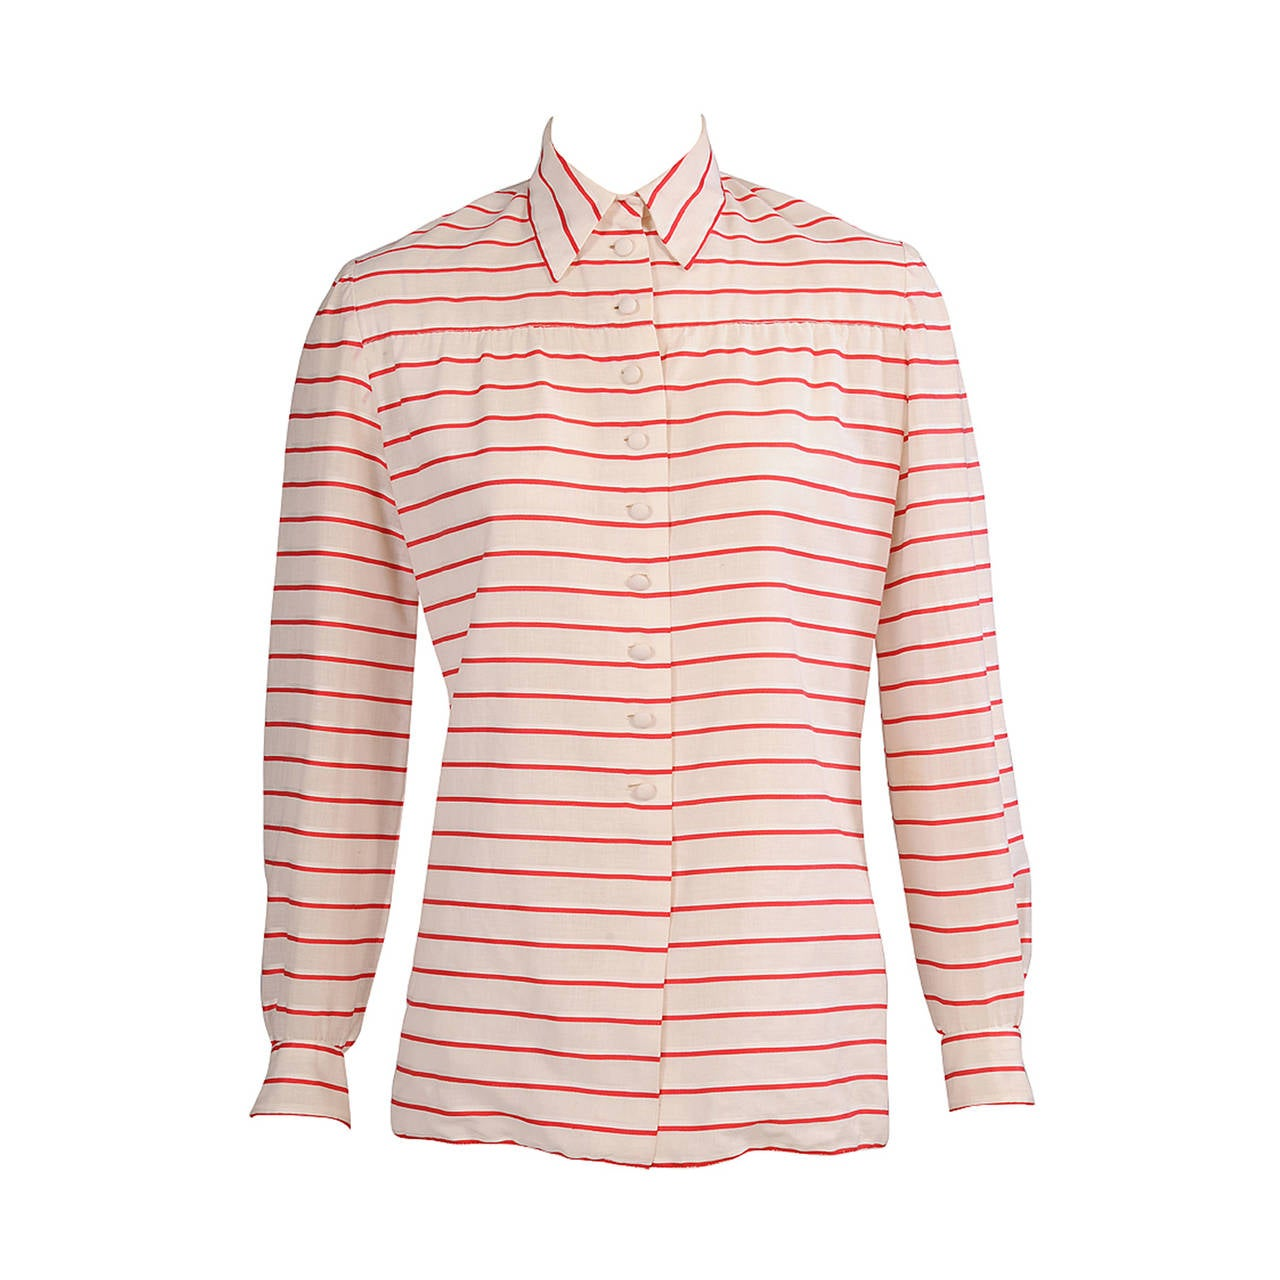 Chanel Red & White Striped Numbered Haute Couture Blouse 1